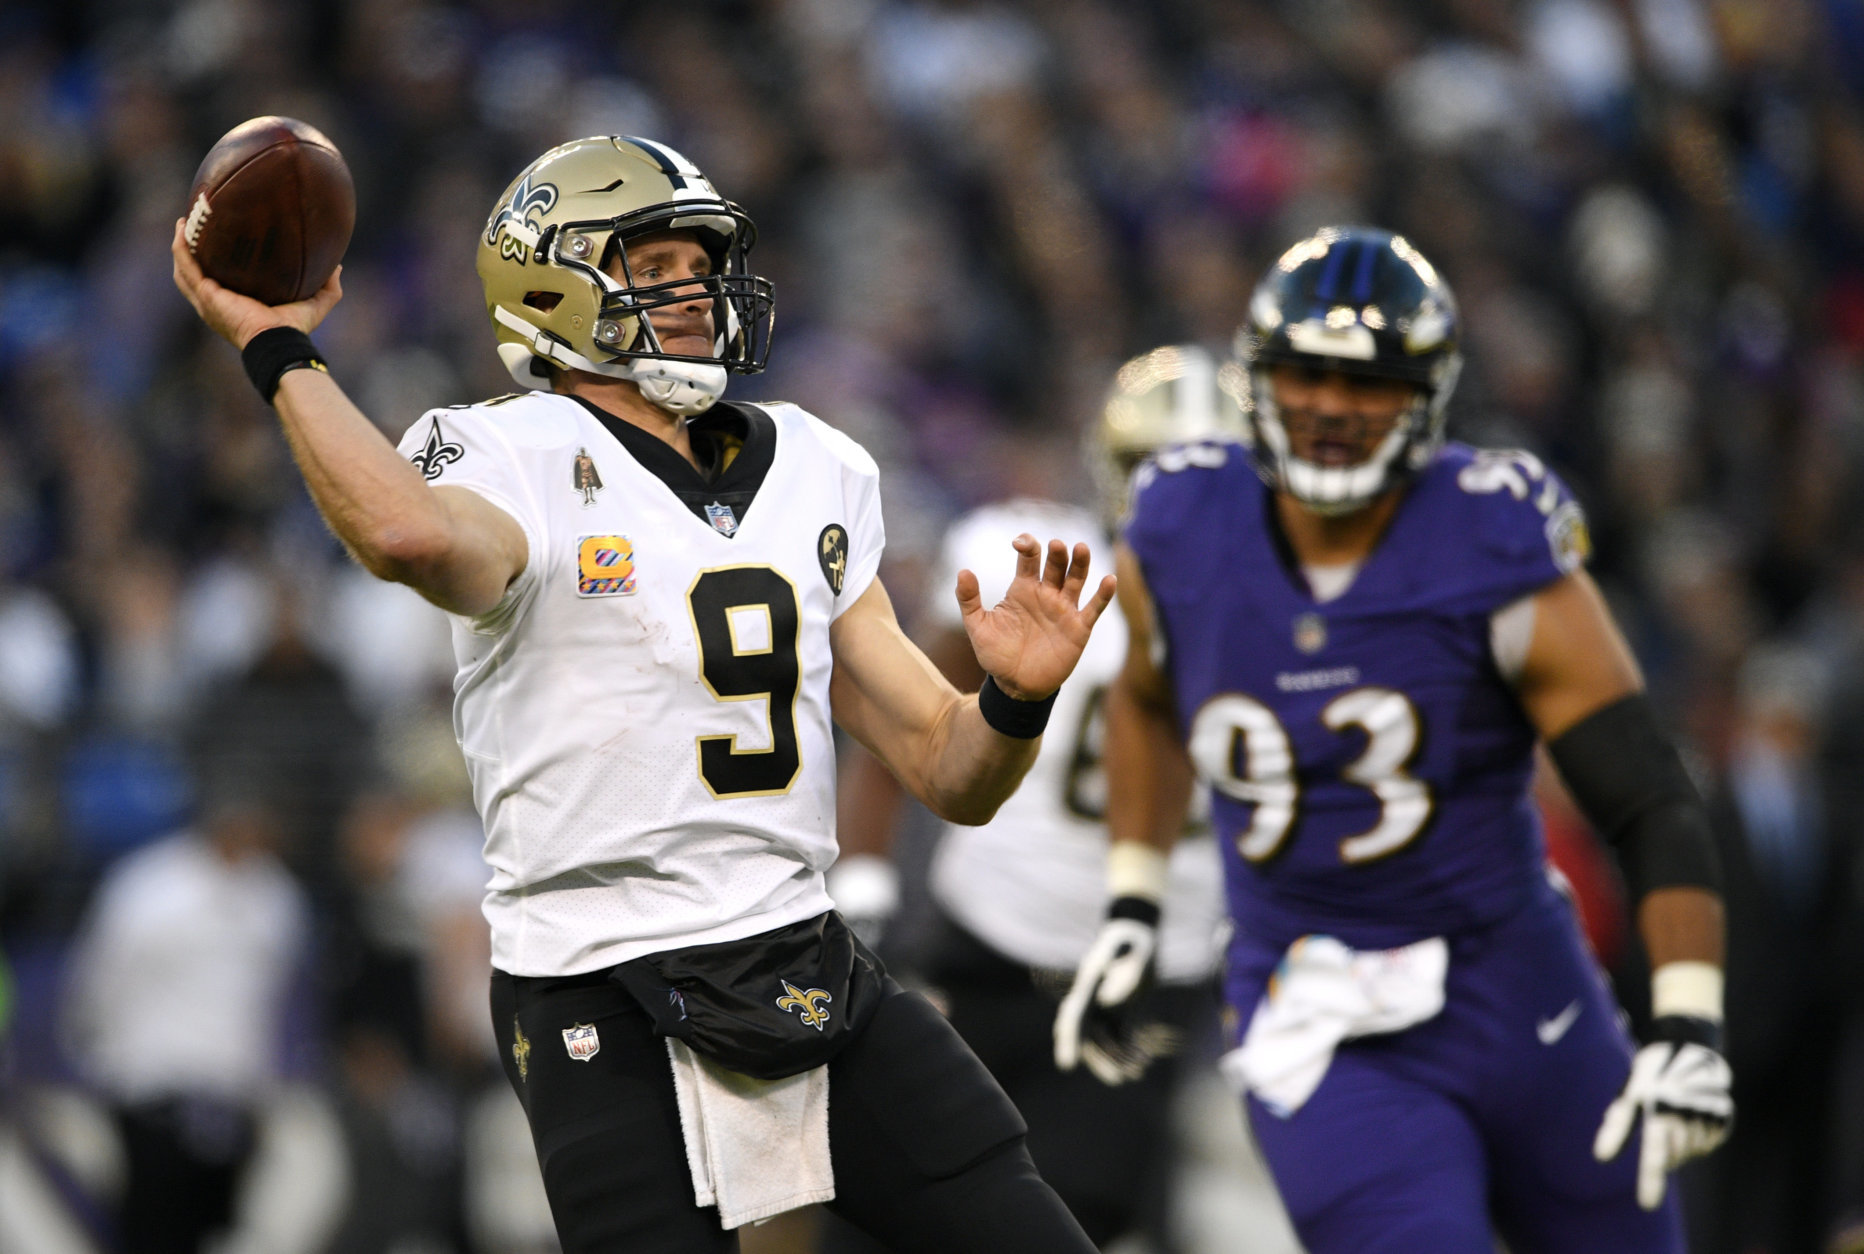 New Orleans Saints quarterback Drew Brees (9) prepares to throw to a receiver in the second half of an NFL football game against the Baltimore Ravens, Sunday, Oct. 21, 2018, in Baltimore. (AP Photo/Nick Wass)